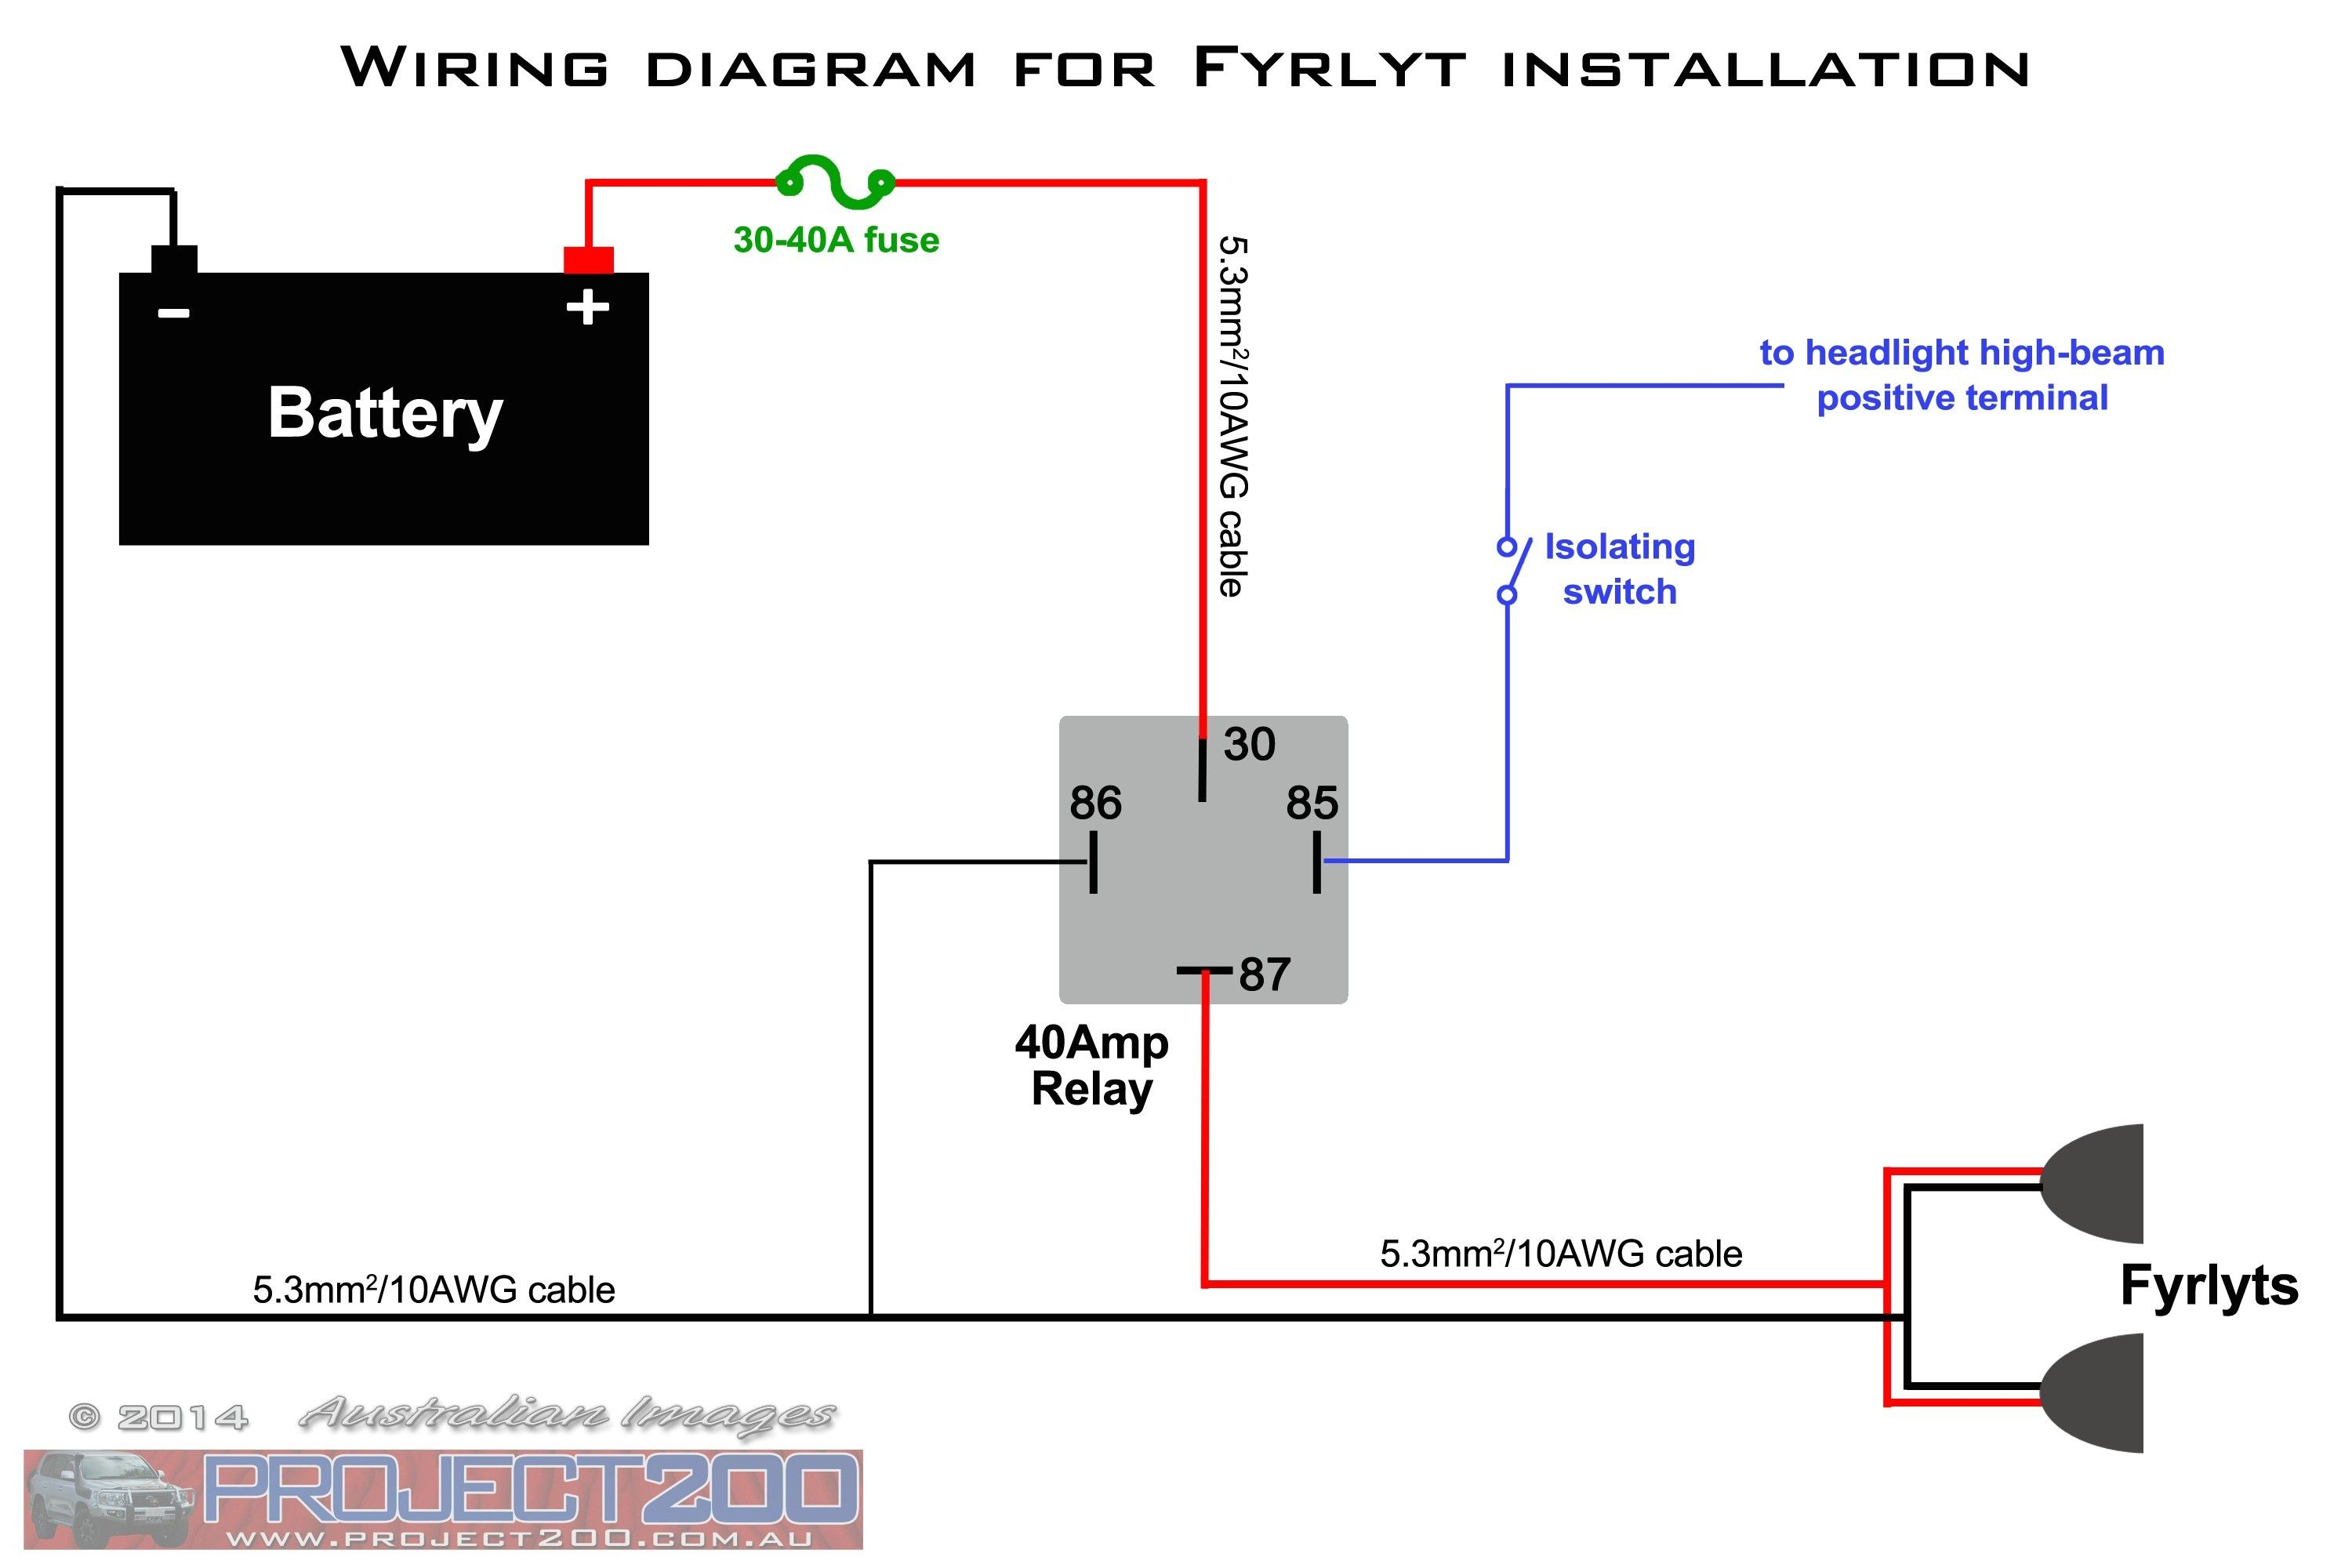 Unique Simple Electrical Circuit Diagram Diagram Wiringdiagram Diagramming Diagramm Visuals Electrical Wiring Diagram Electrical Circuit Diagram Diagram